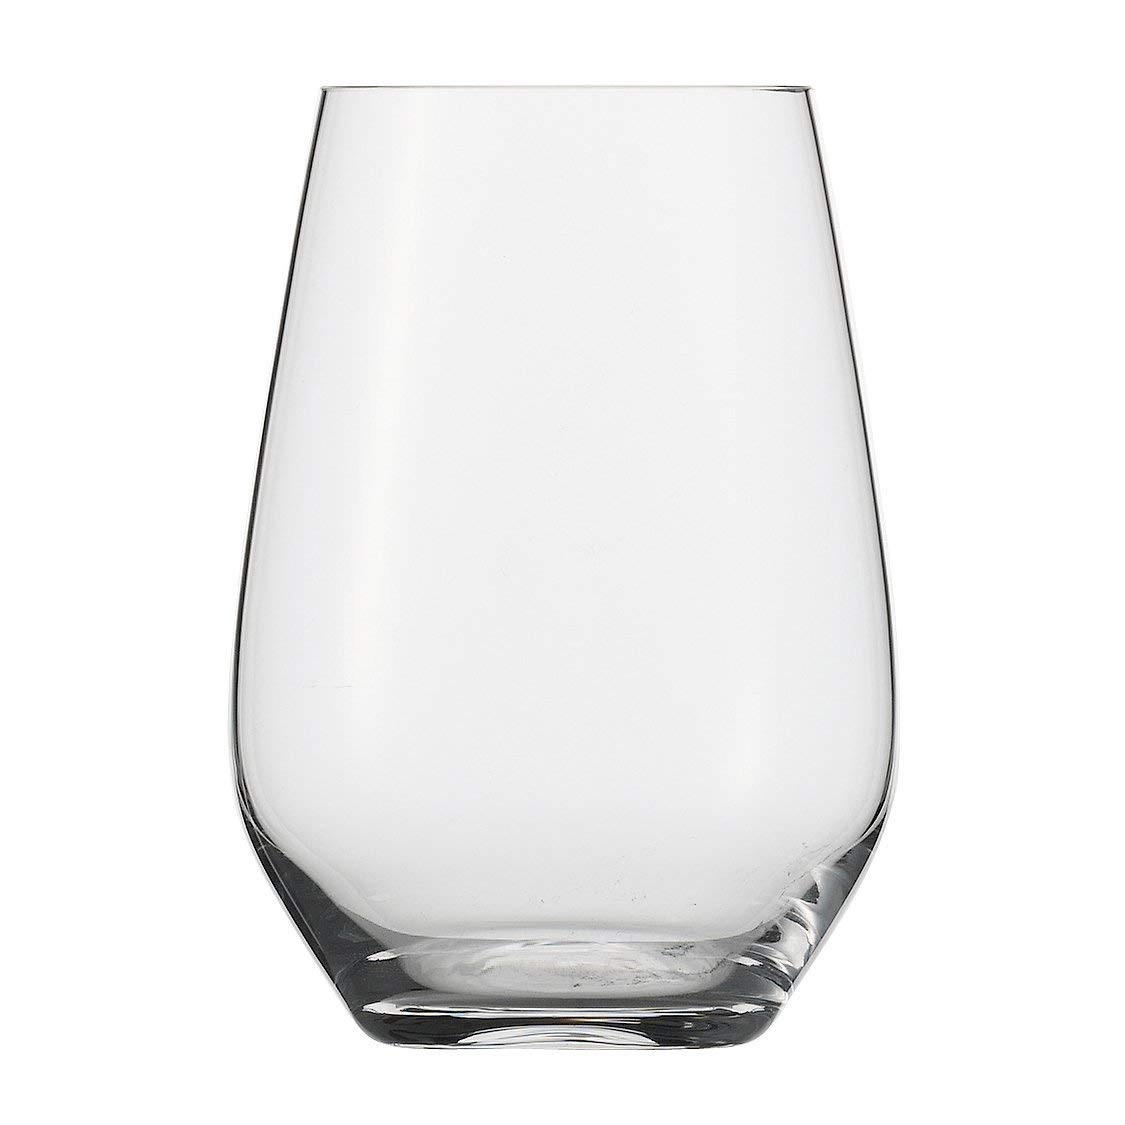 large brandy snifter vase of schott zwiesel tritan crystal glass forte collection rocks tumbler pertaining to schott zwiesel tritan crystal glass forte collection rocks tumbler 20 4 ounce set of 6 amazon co uk kitchen home